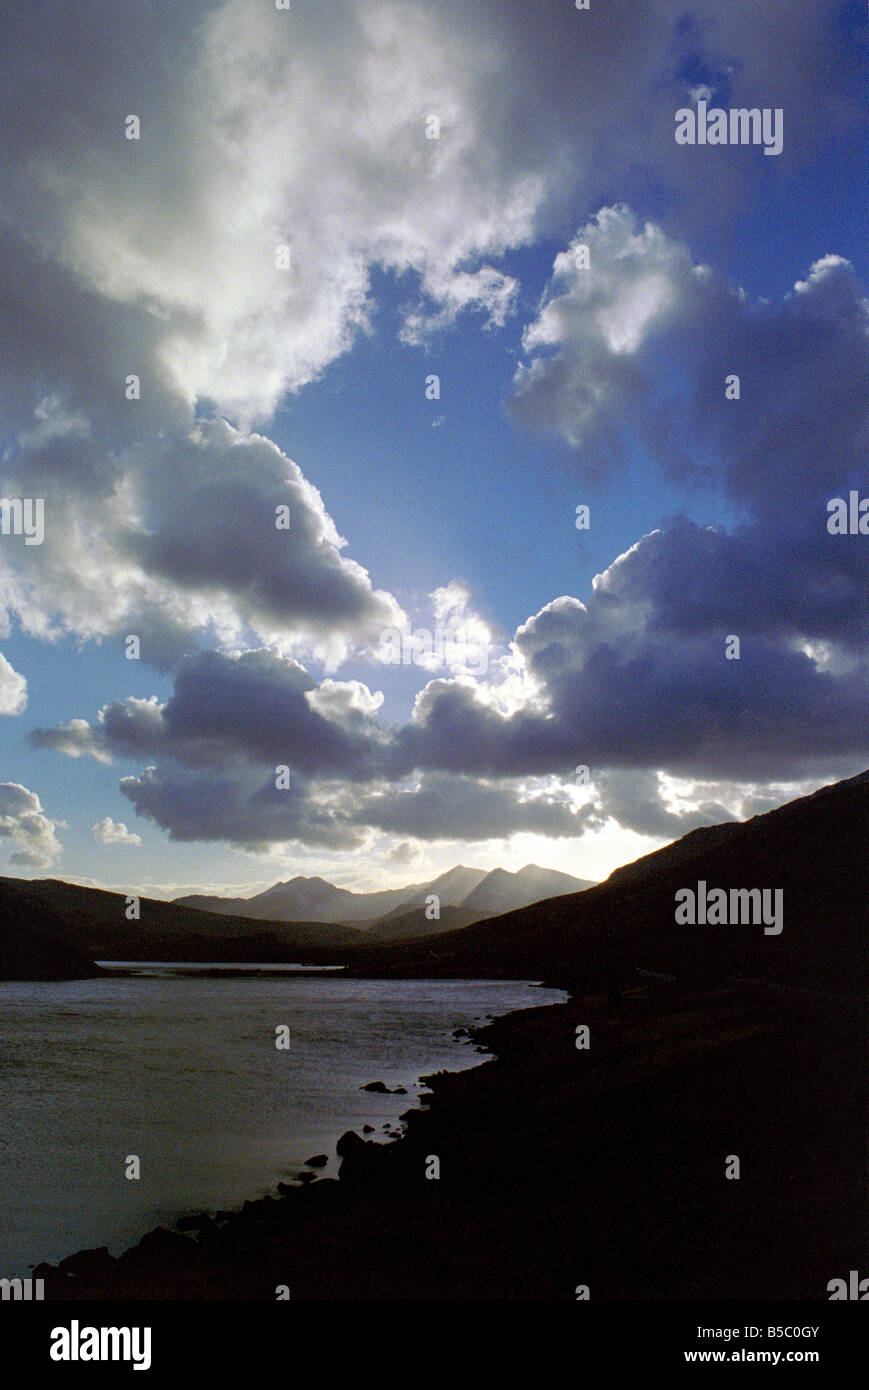 Sunrise over the lakes and mountains of Snowdonia National Park. Stock Photo